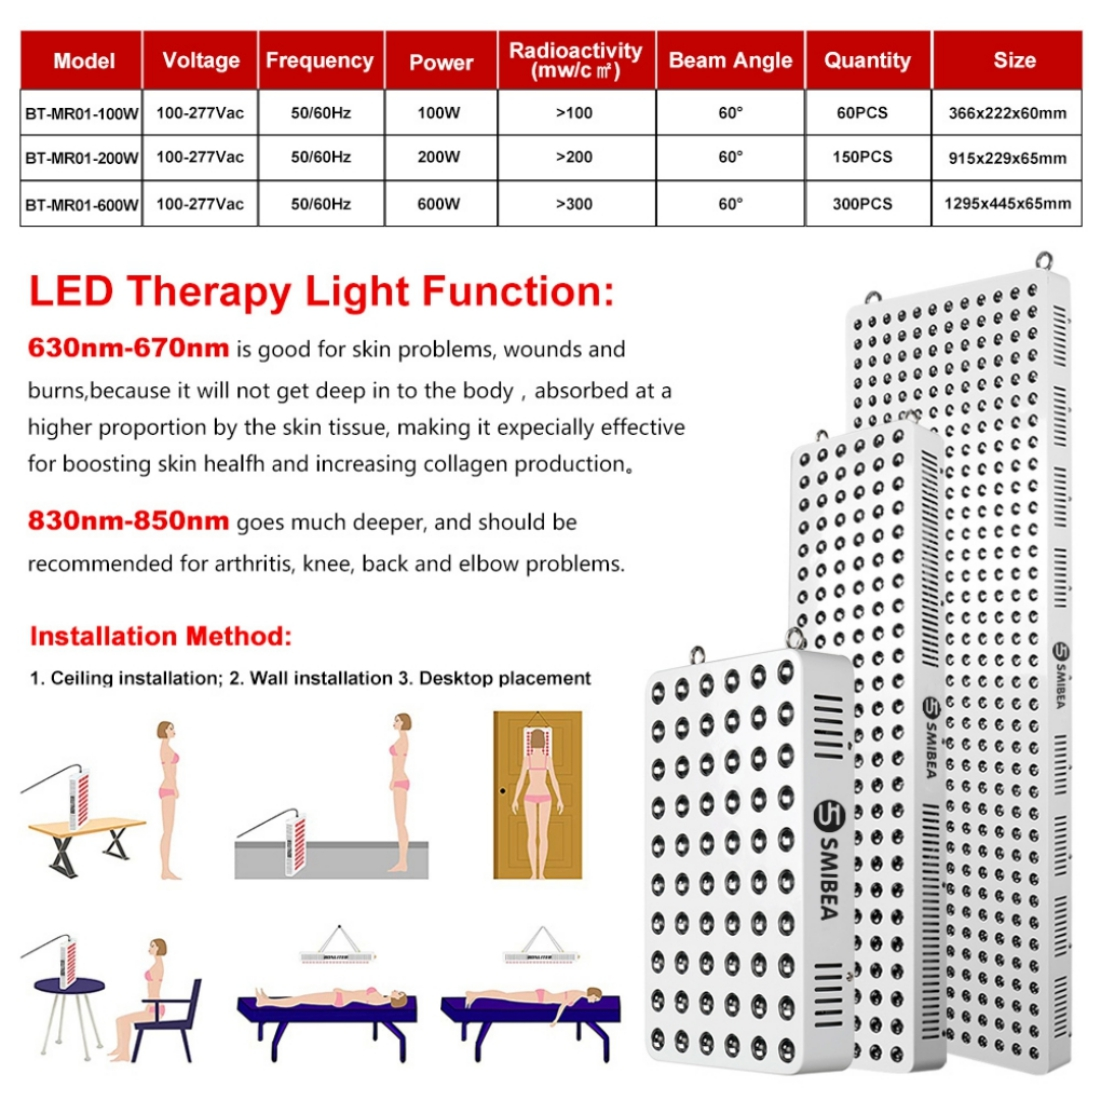 Physical Medical Grade Red Led Light Therapy